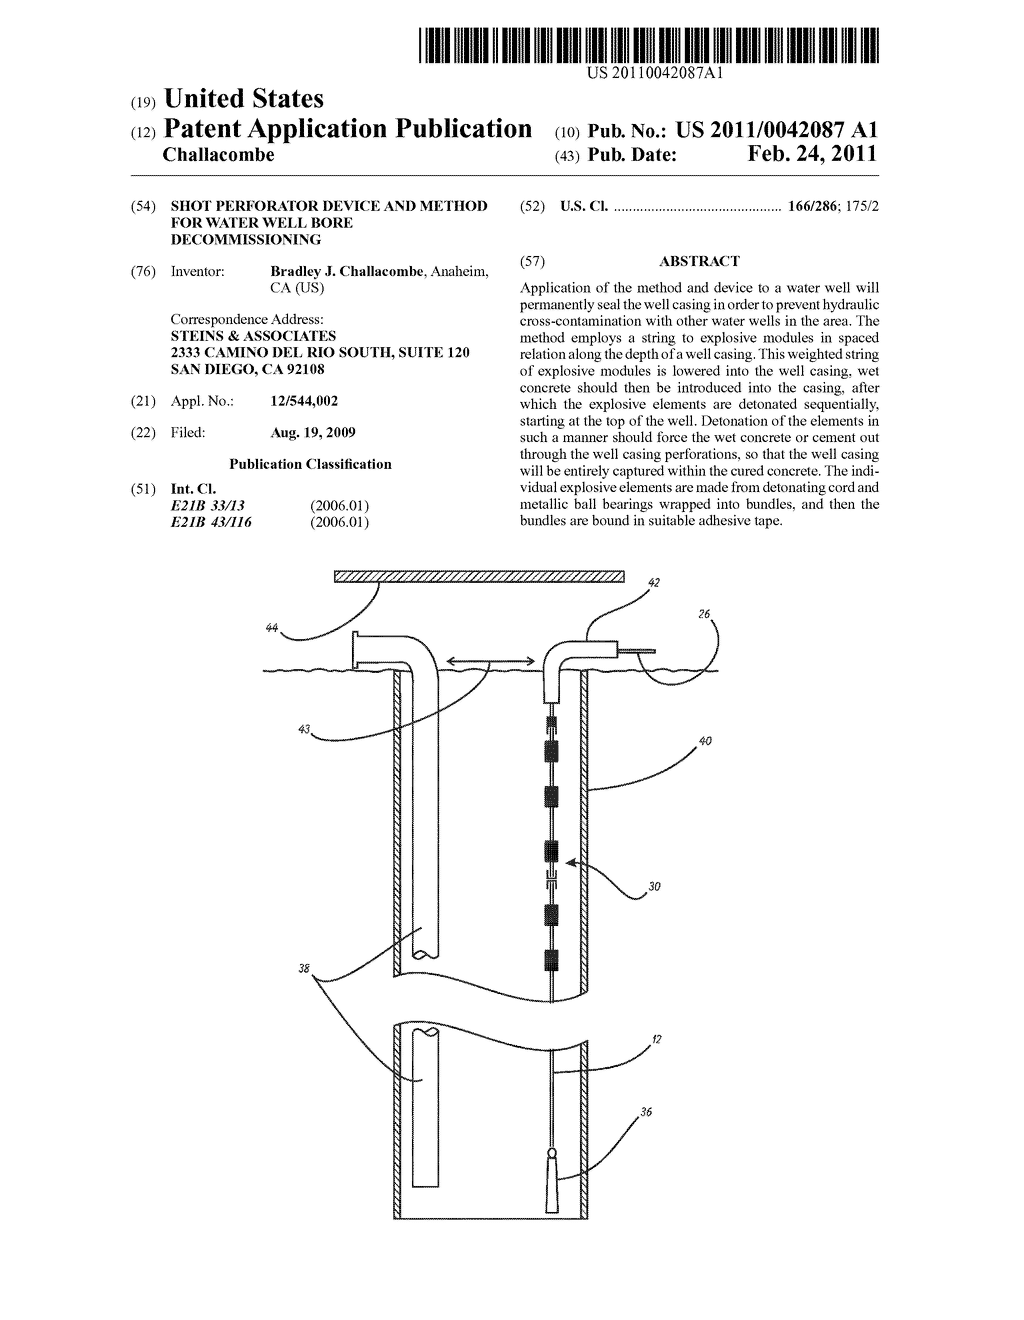 Shot Perforator Device and Method for Water Well Bore ... on